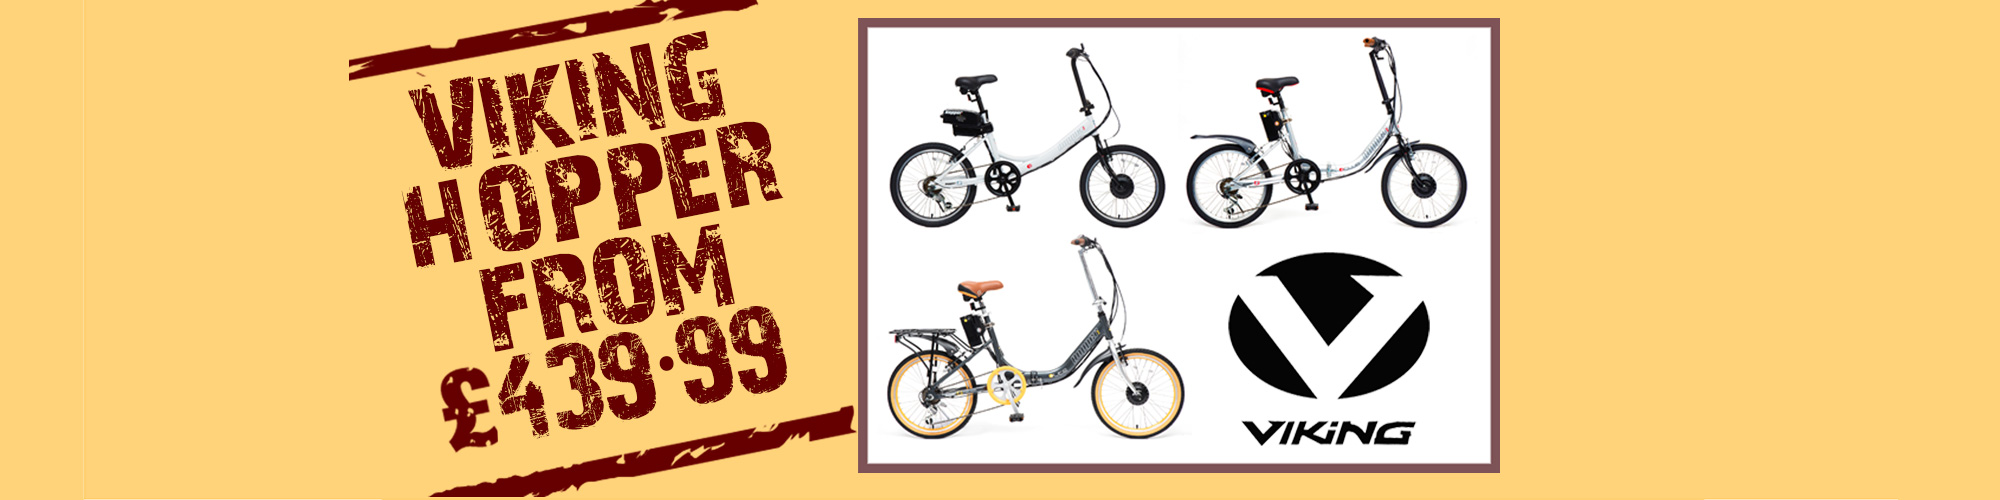 Viking Hopper Electric Bikes from £439.99